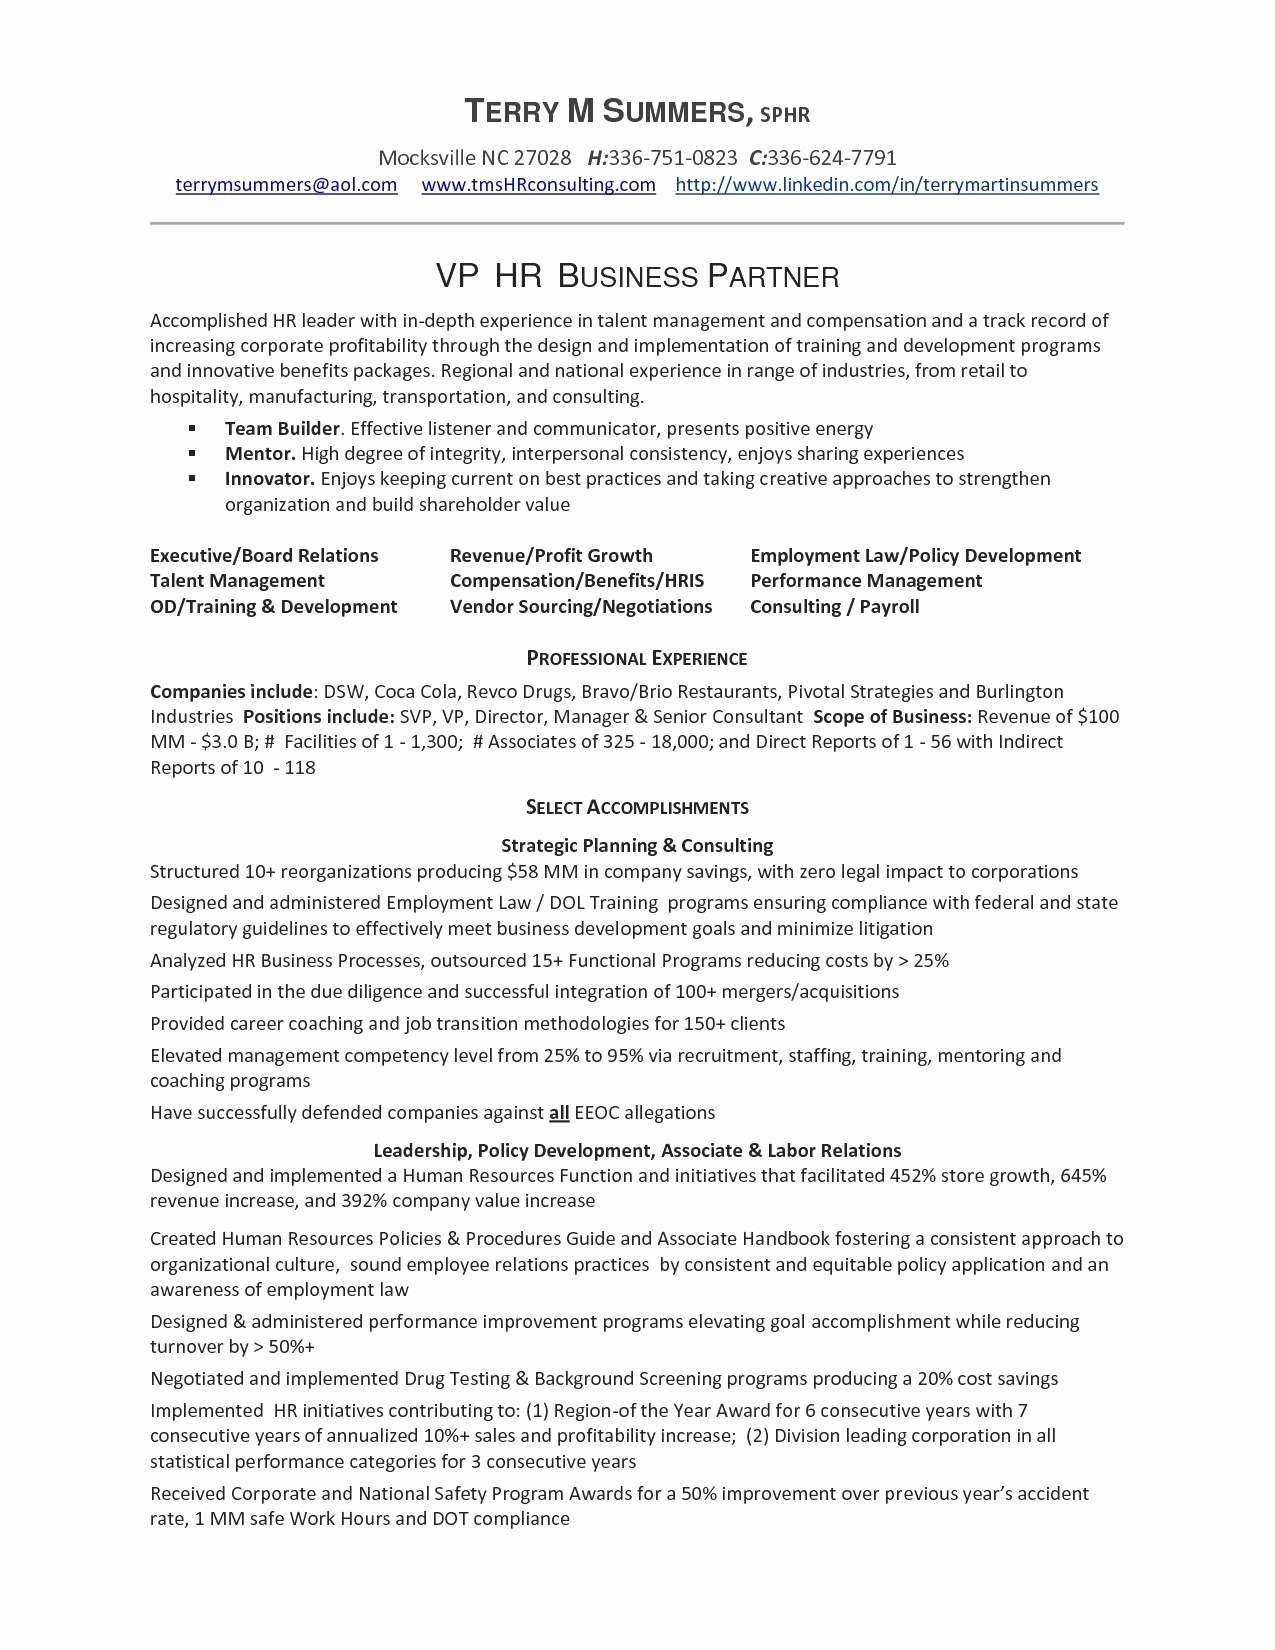 Resume Services San Antonio - Awesome Landscape Panies Hiring Near Me Concept